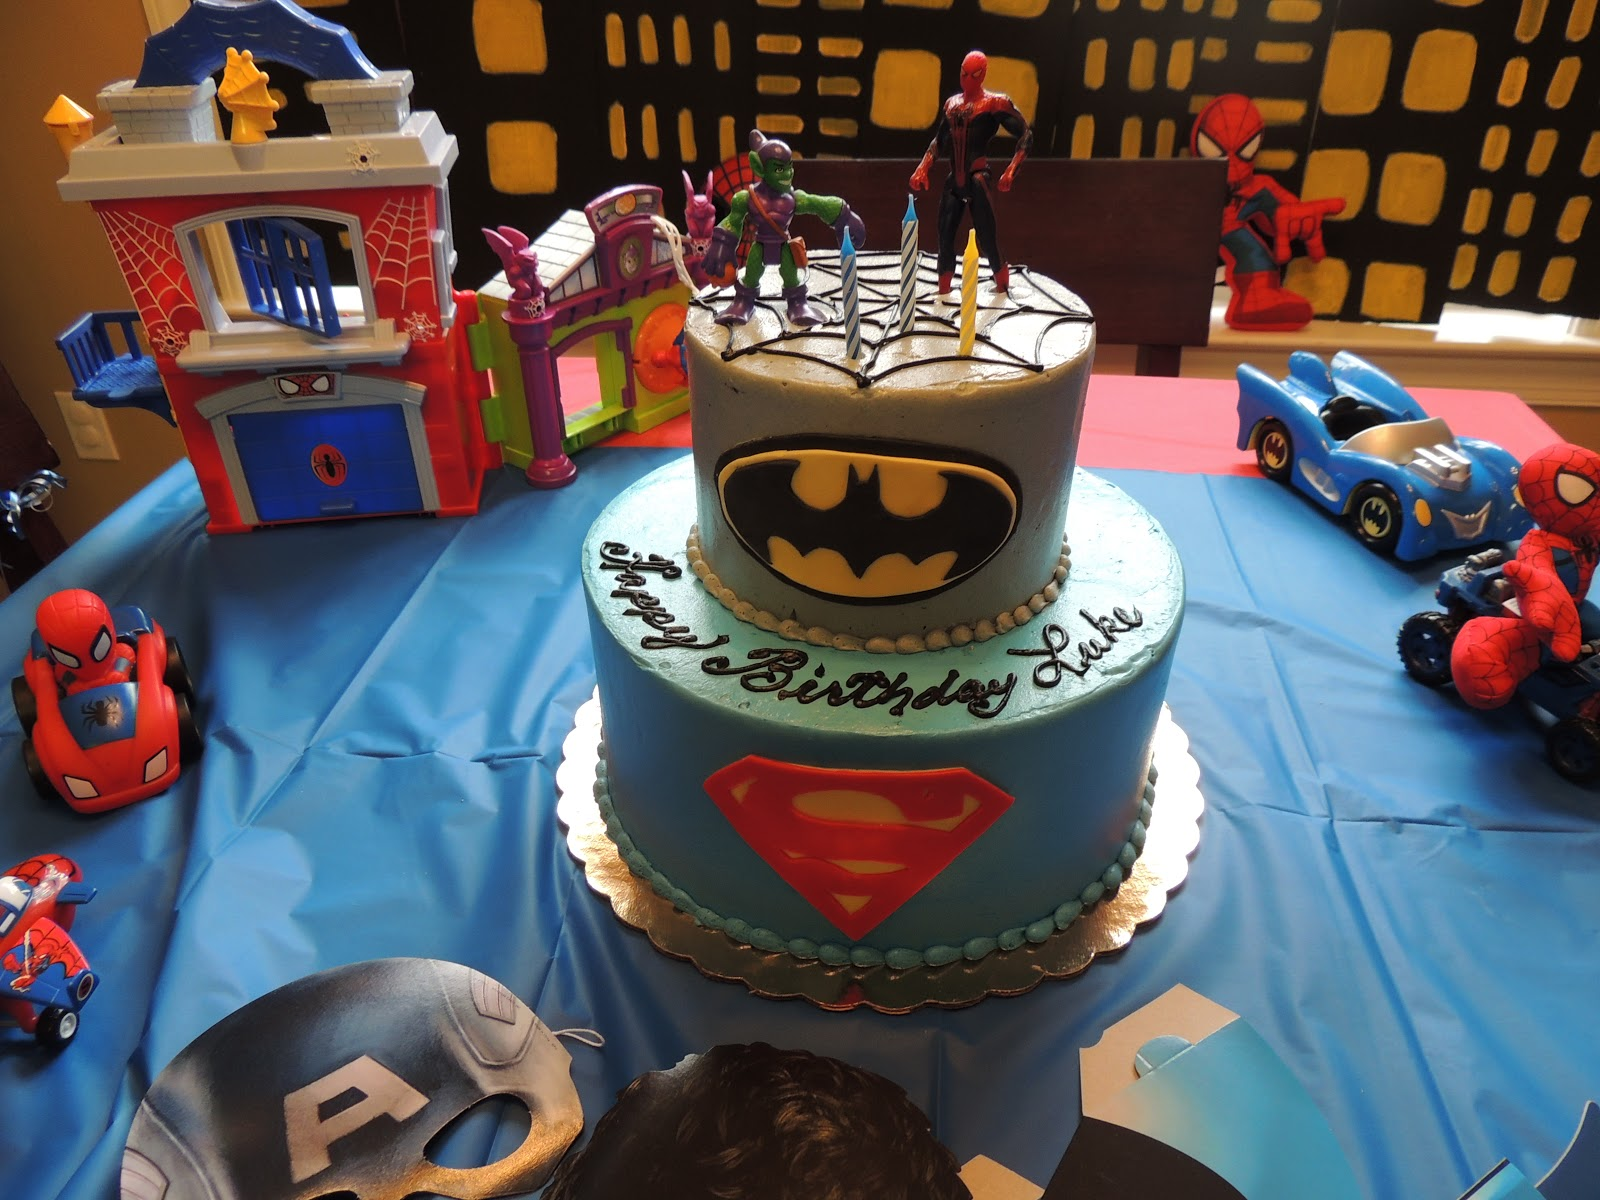 A Superhero Birthday Party For Her 3 Year Old Boy House Had Spiderman Superman And Batman Decorations Everywhere It Was Decorated So Cute